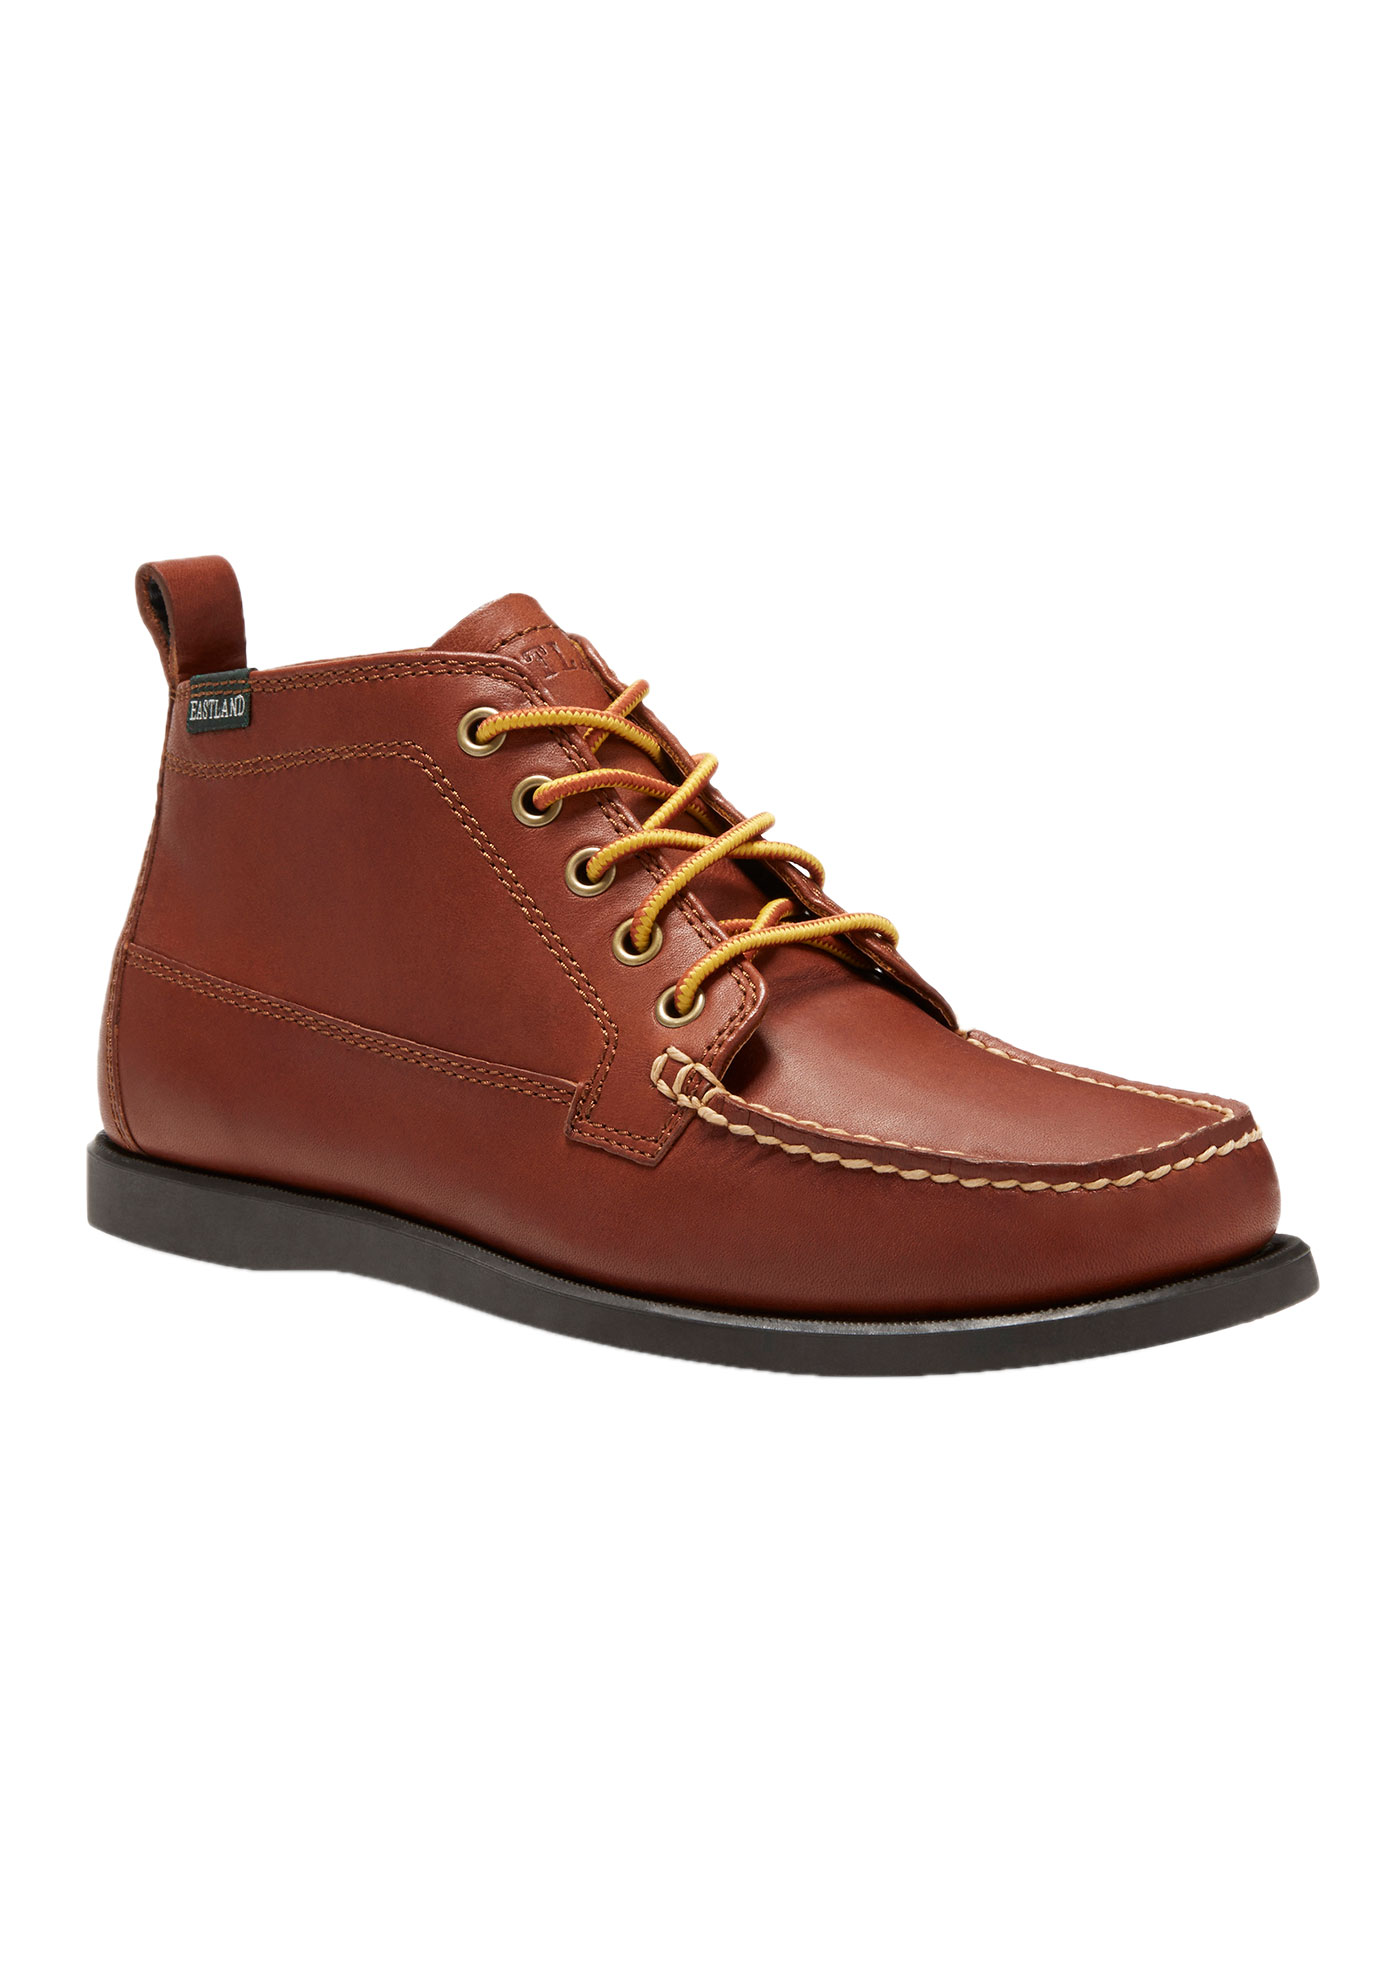 Seneca Camp Moc Chukka Boots by Eastland®,